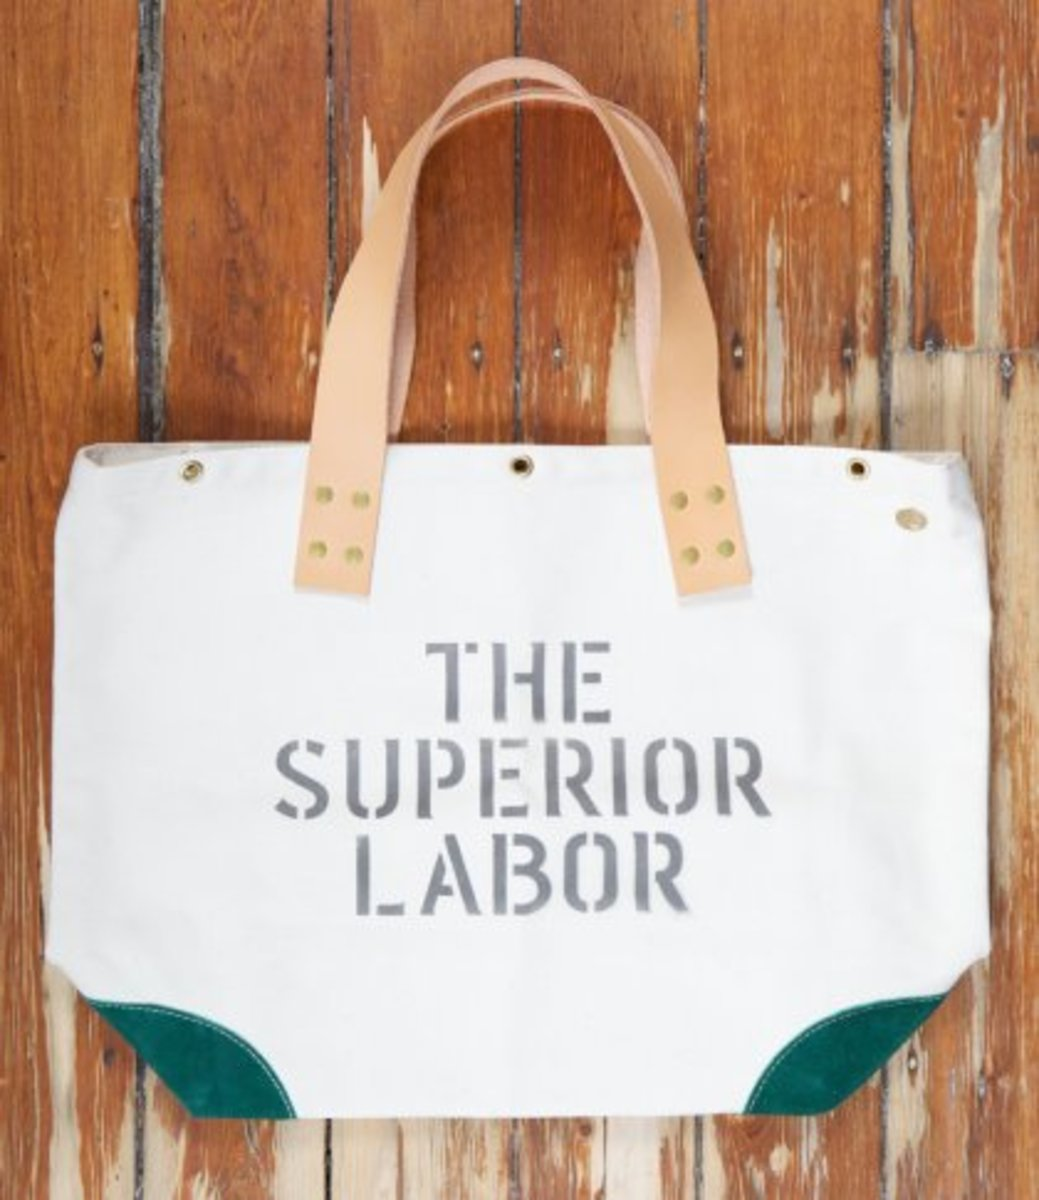 super-labor-market-bag-12